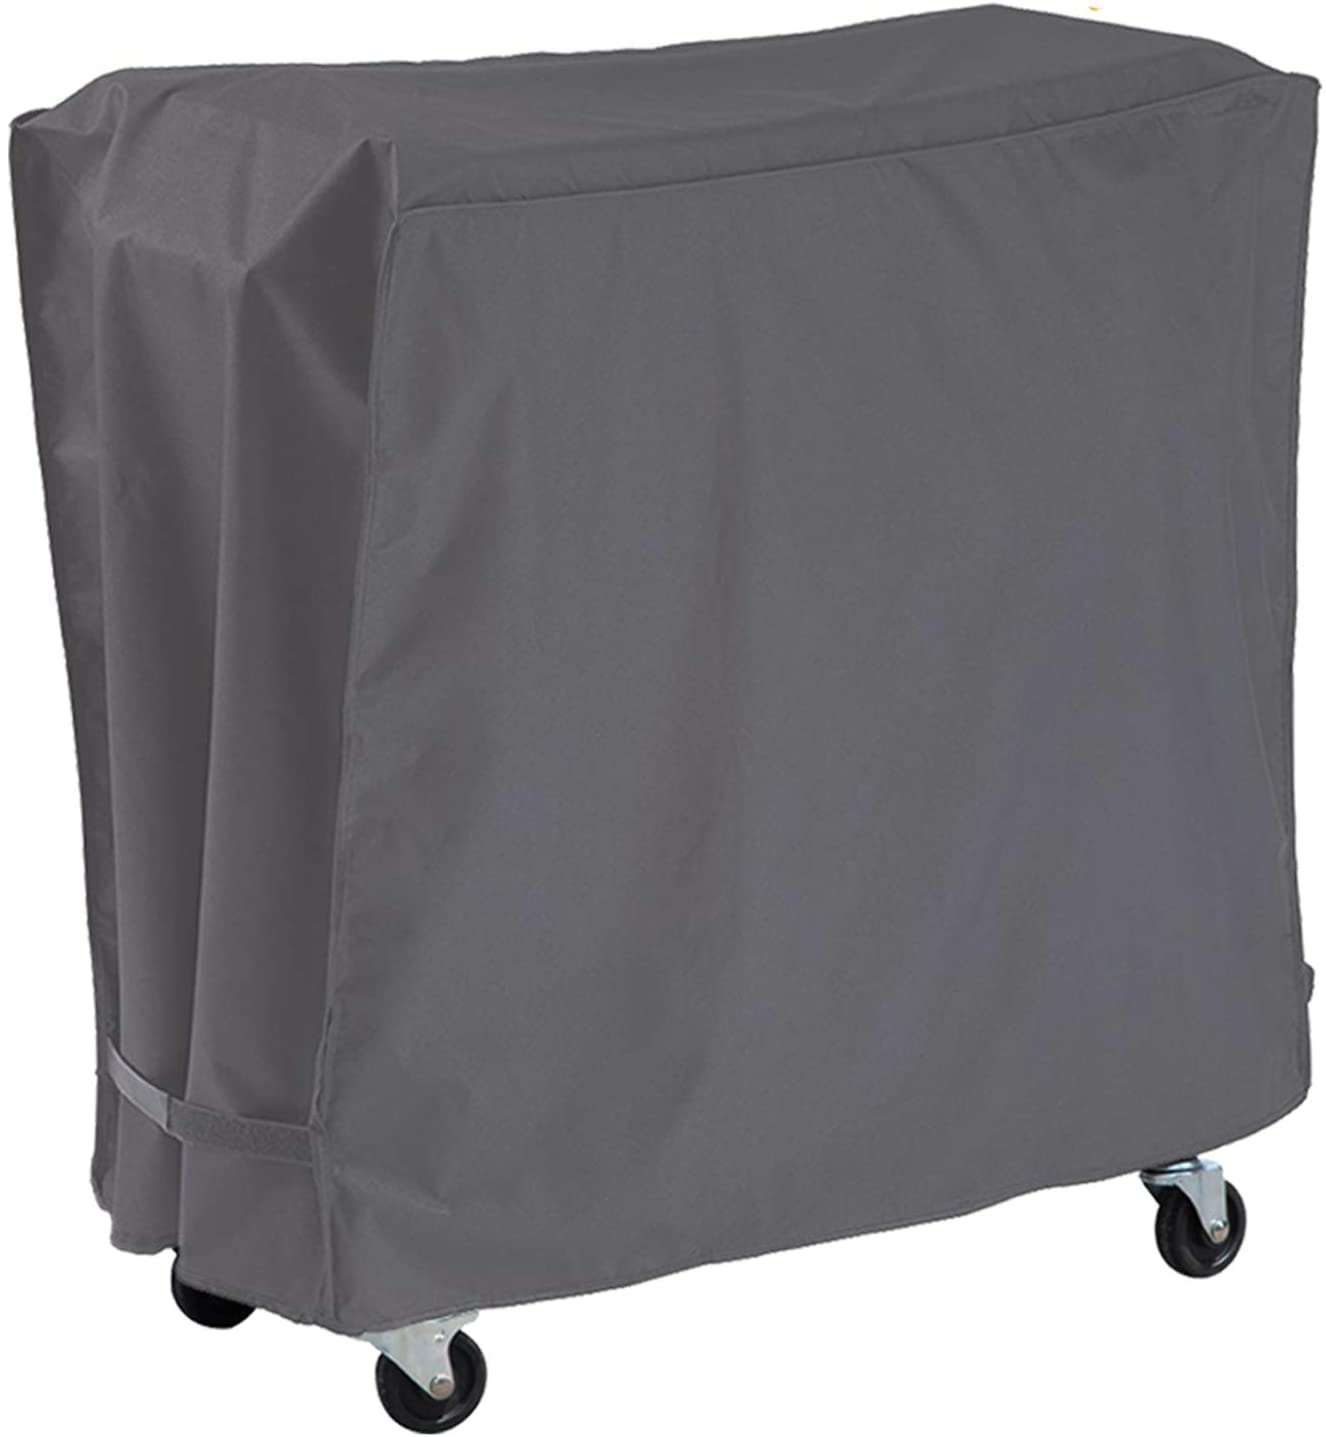 Patio Cooler Cart Cover Waterproof Dustproof UV Resistant Outdoor Ice Chest Rolling Cart Cover for Party BBQ Protective Cooler Cover Fit 80/100 QT